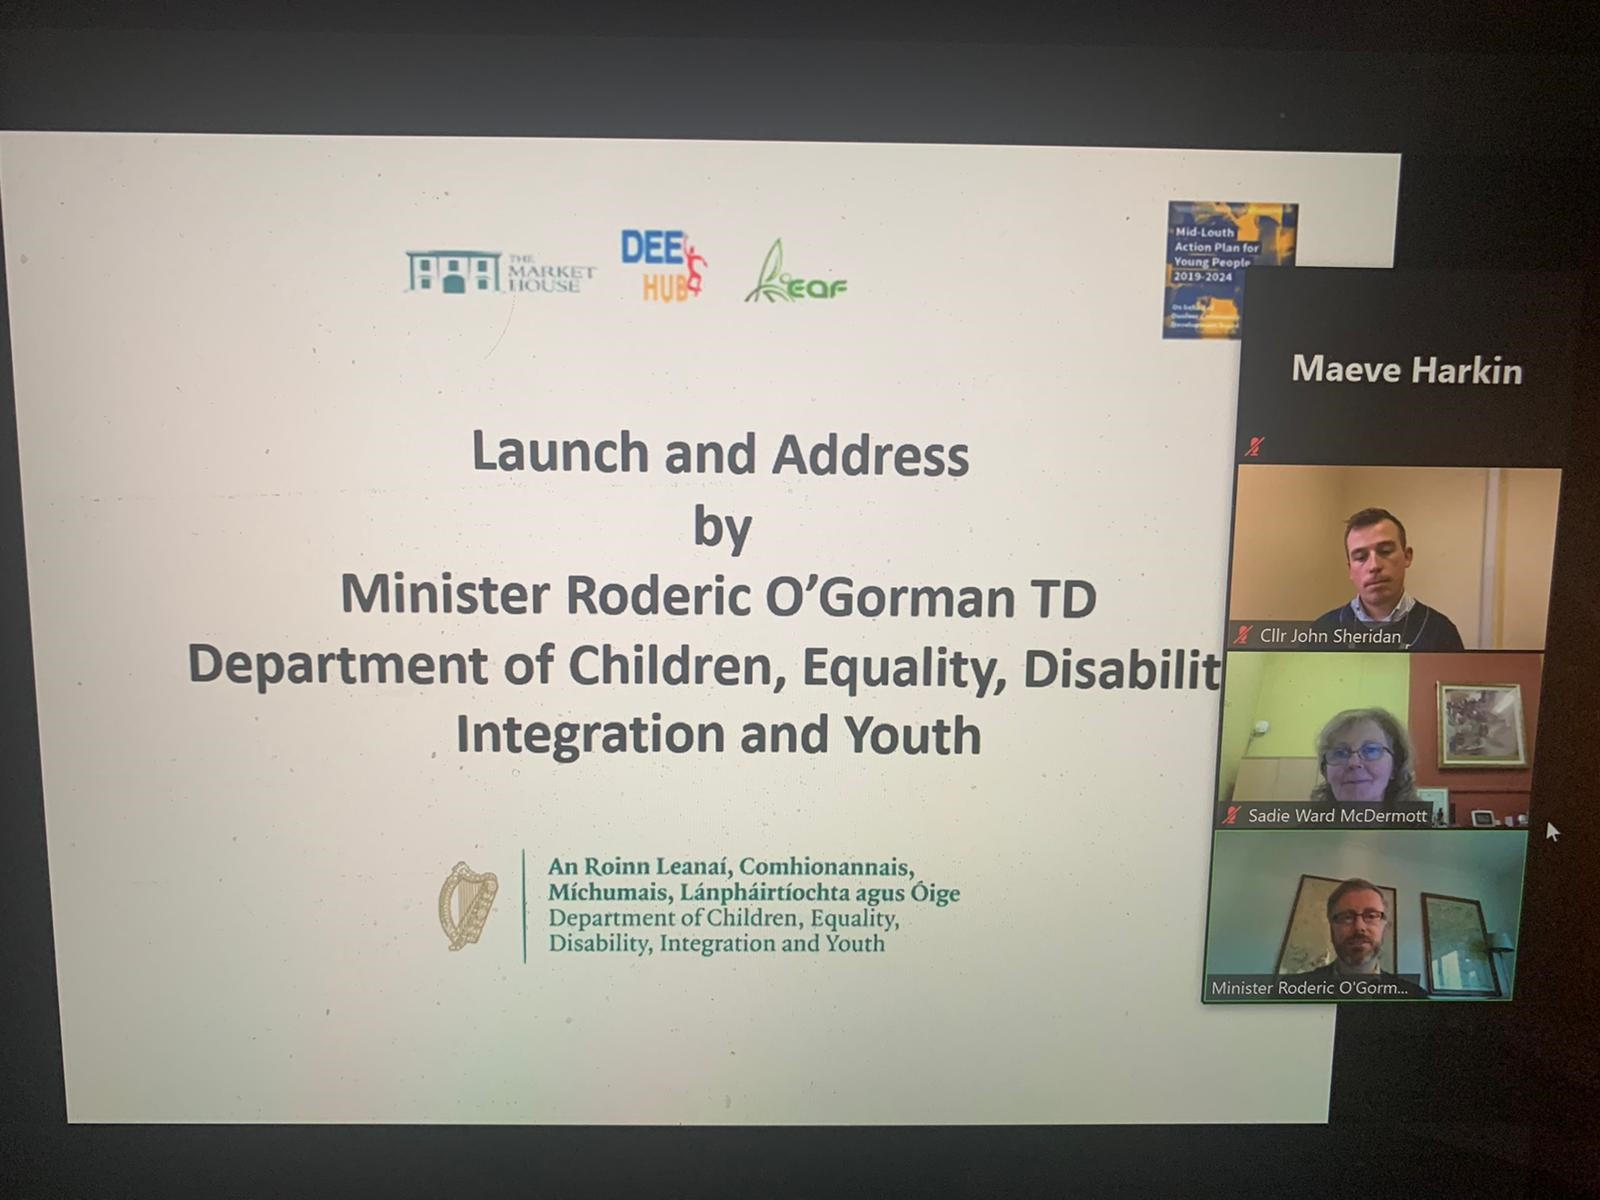 IFI Welcomes Launch of Mid-Louth Action Plan for Young People